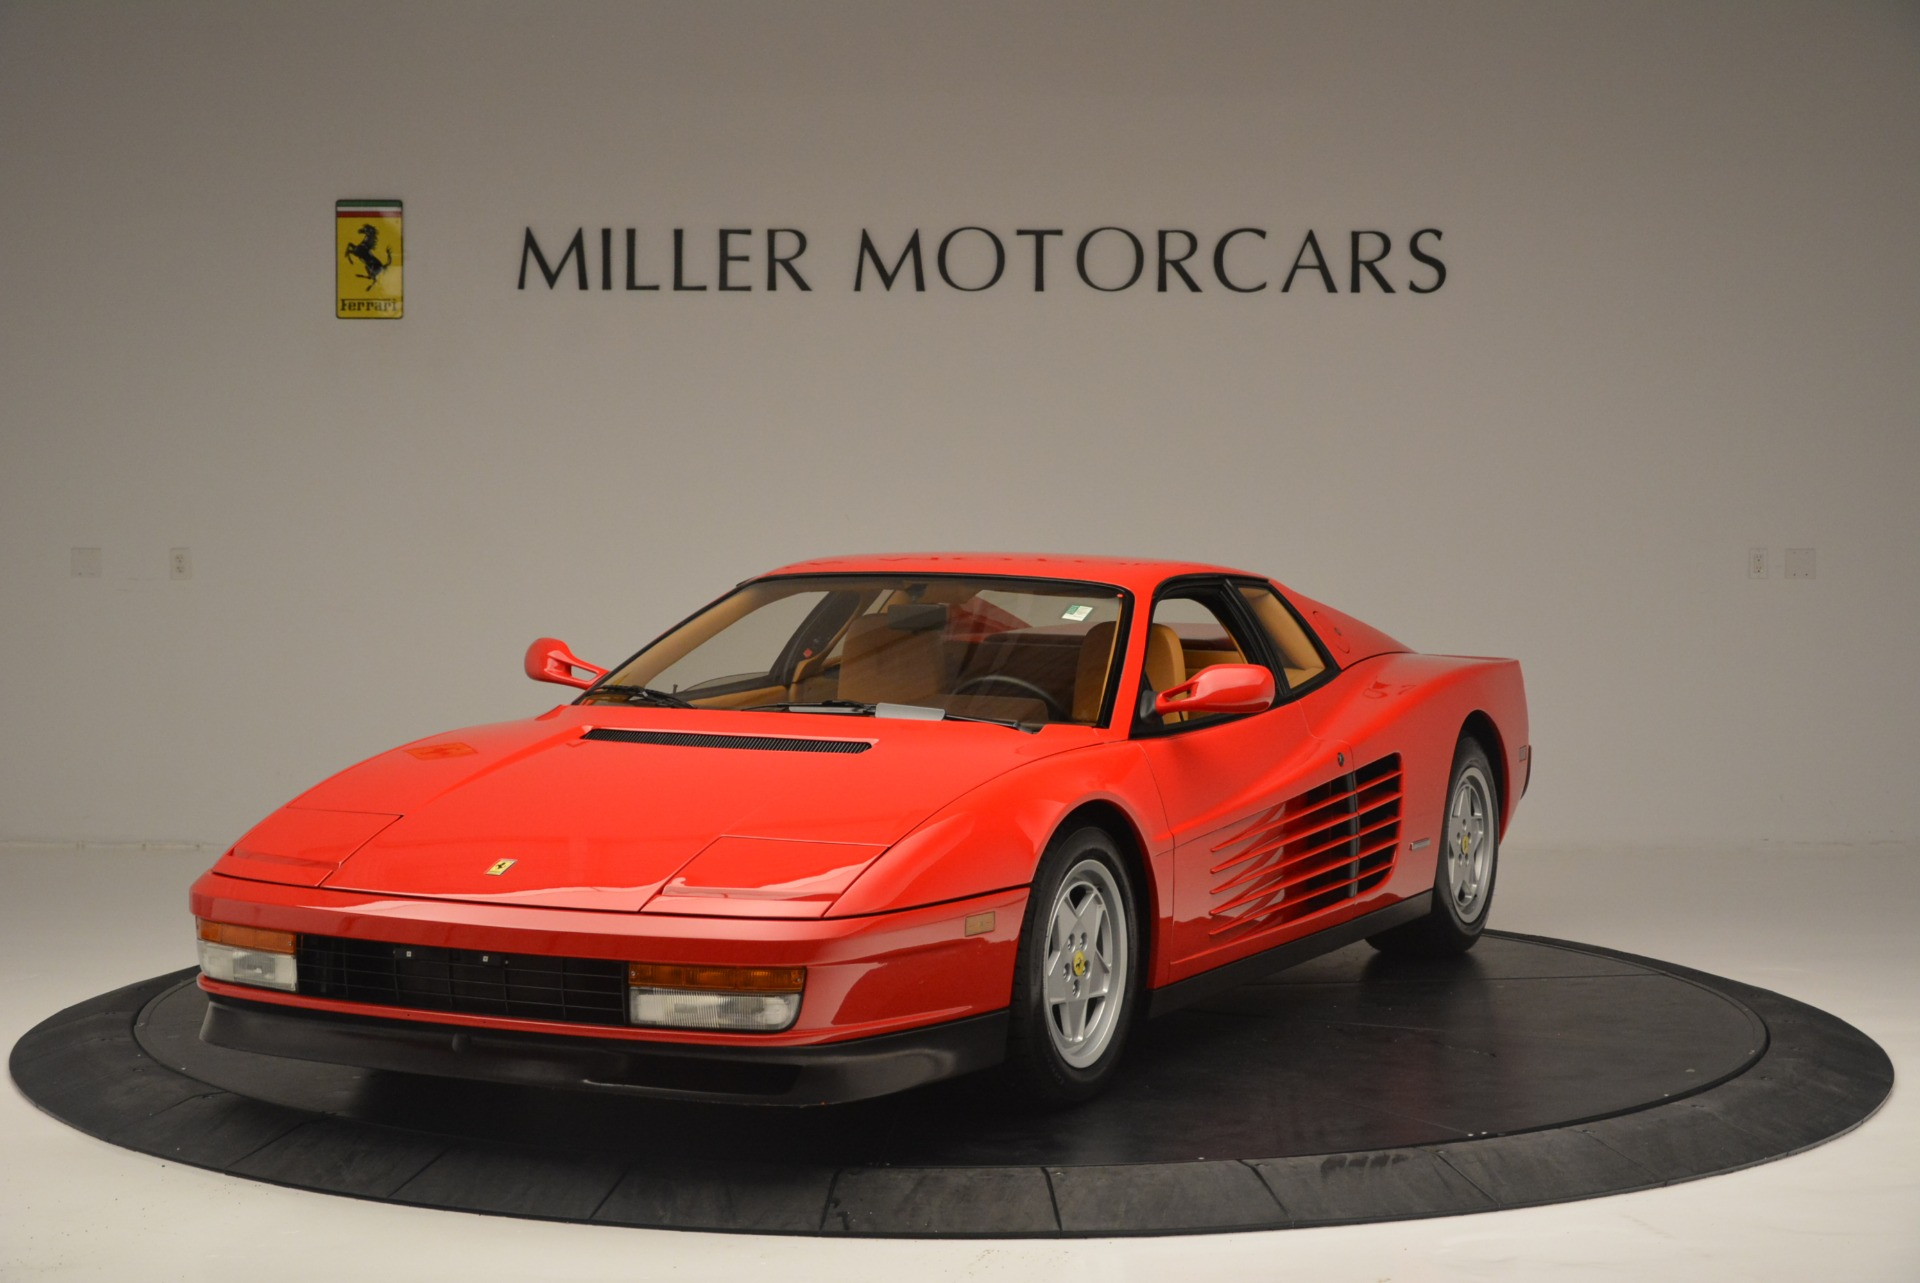 Used 1990 Ferrari Testarossa for sale Sold at Pagani of Greenwich in Greenwich CT 06830 1